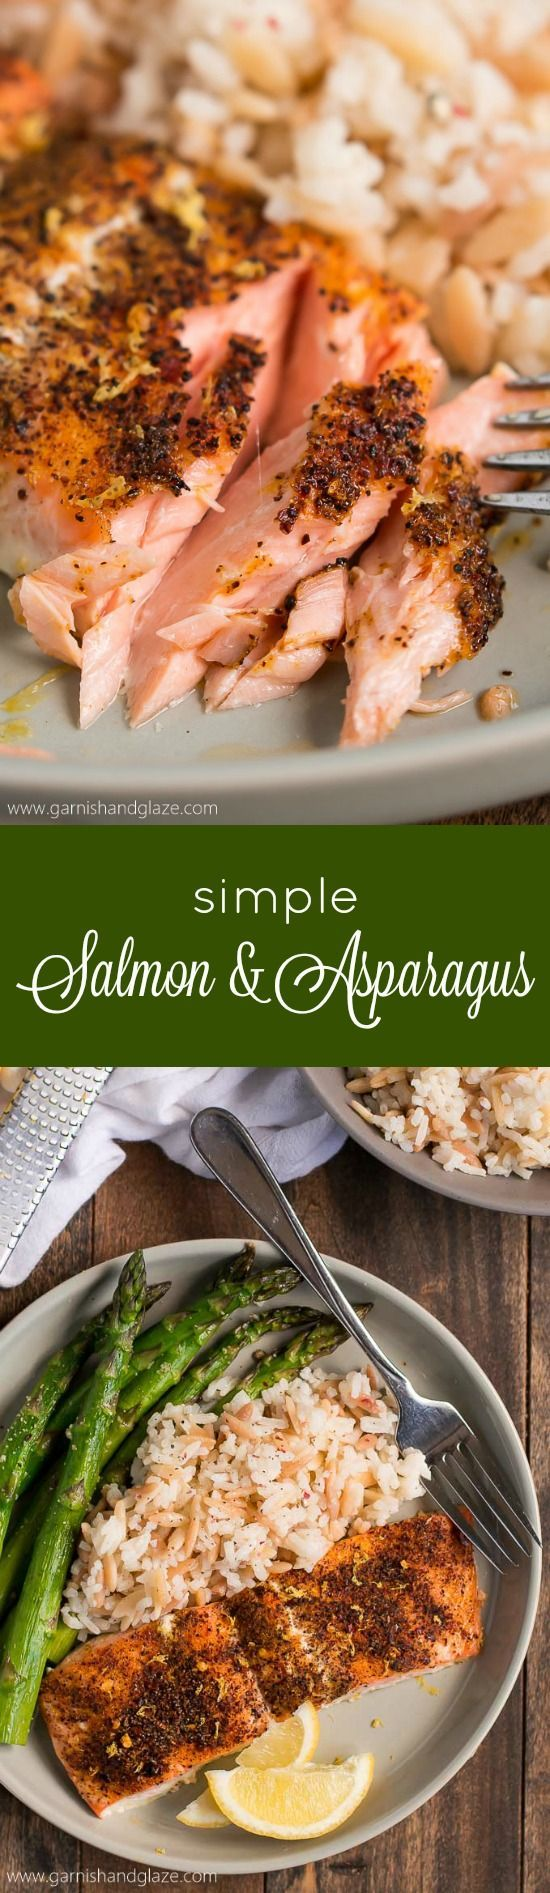 Get a delicious healthy dinner on the table in less than 20 minutes with this Simple Salmon & Asparagus.